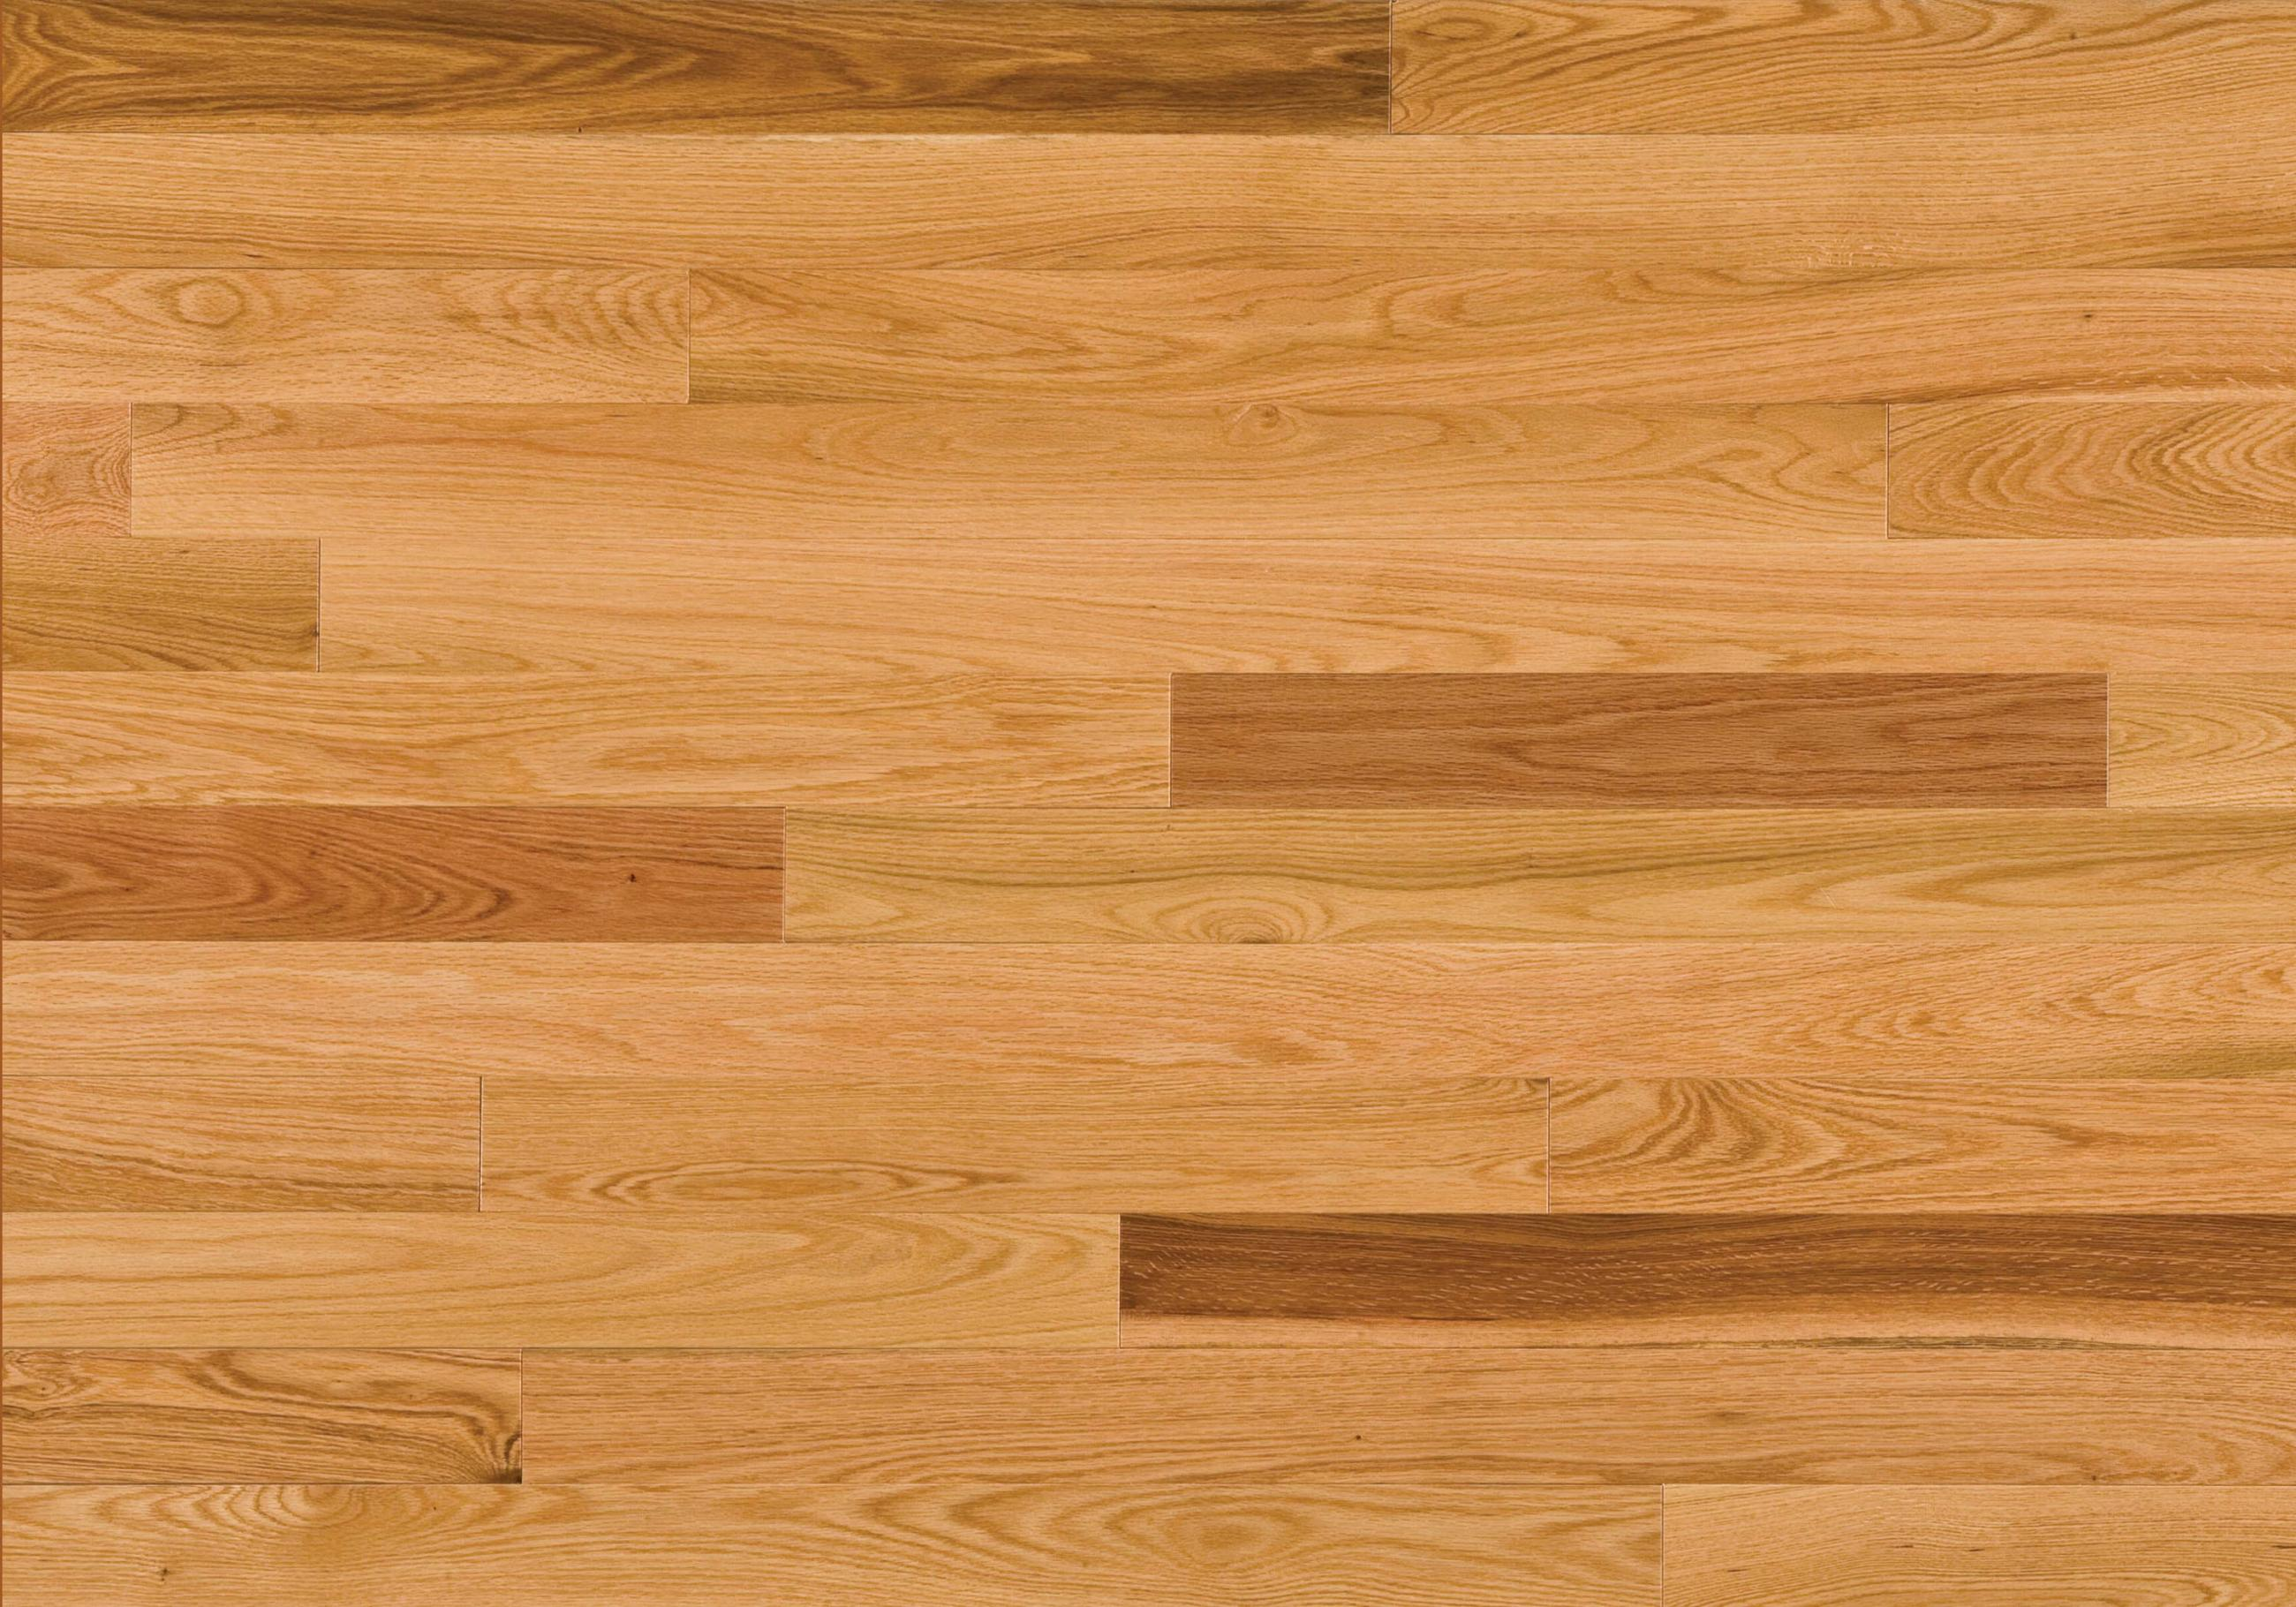 Engineered hardwood flooring specialty store in anaheim ca for Natural oak wood flooring